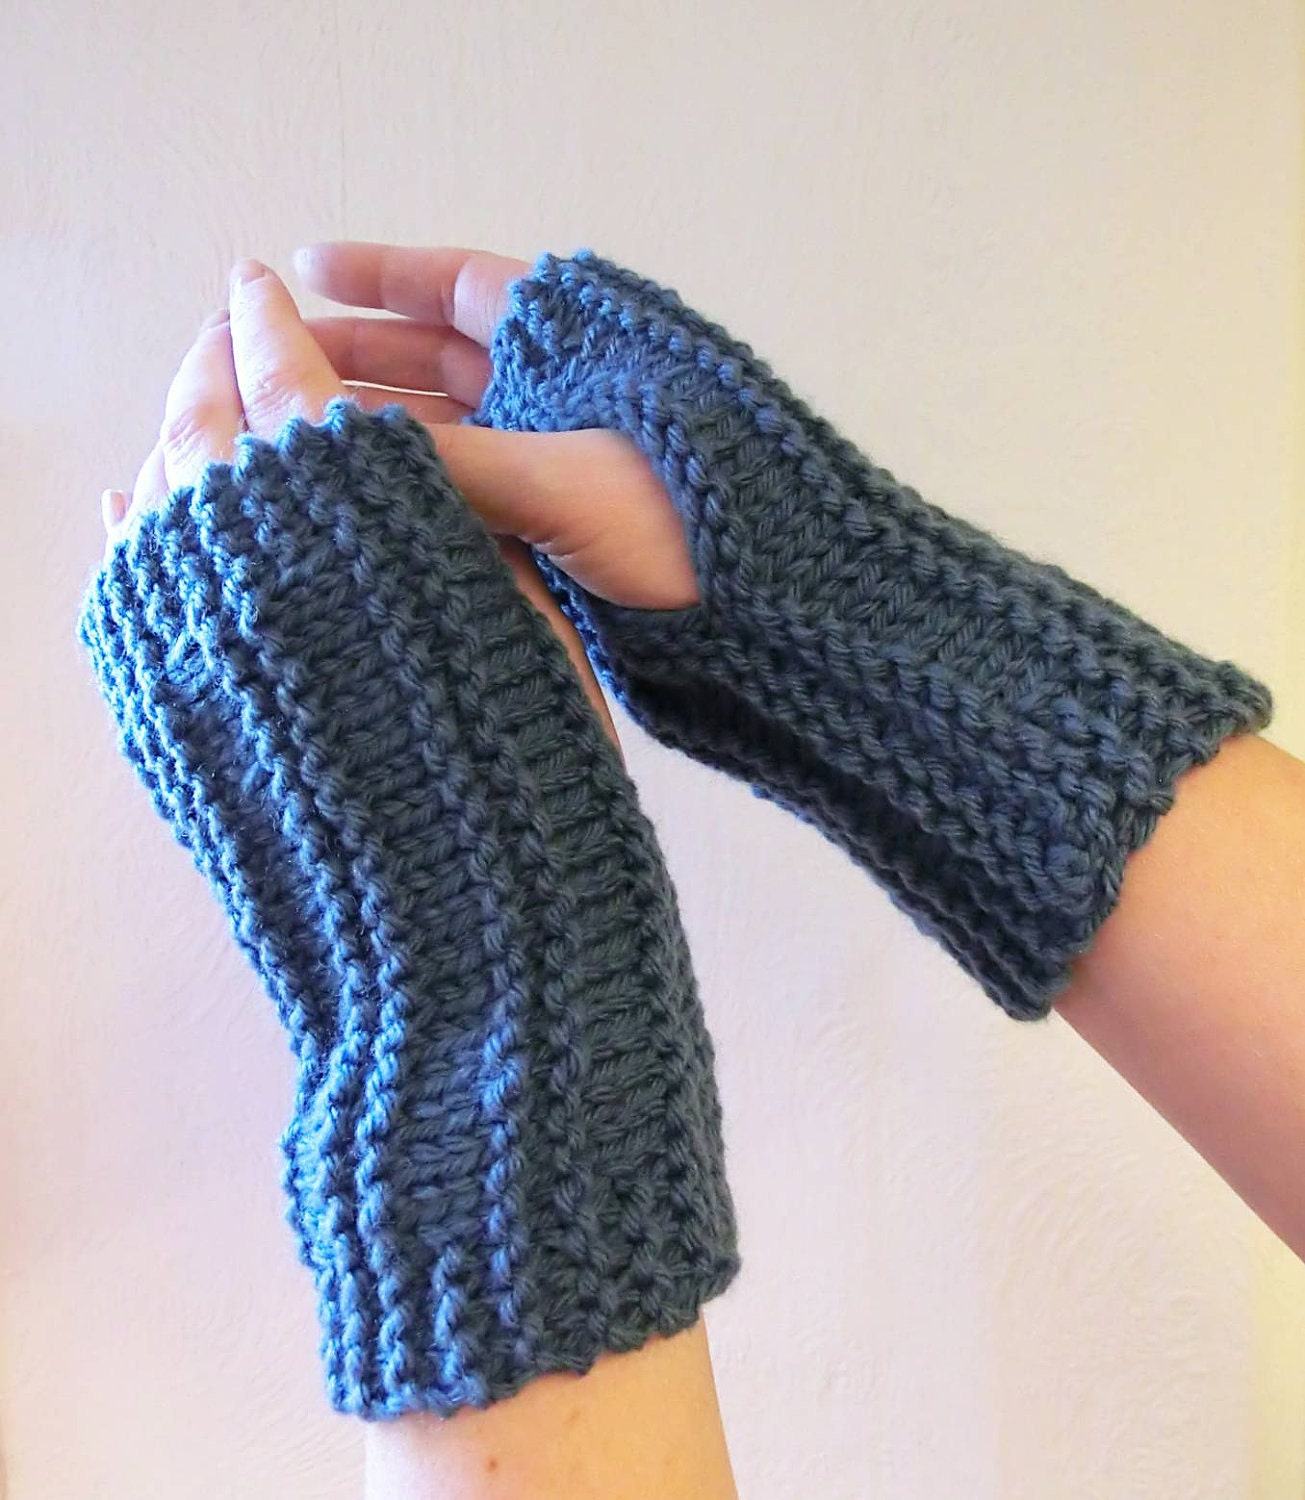 Wrist Warmers Knitting Pattern : Knitting Pattern for Easy Peasy Wrist Warmers by RuthMaddock